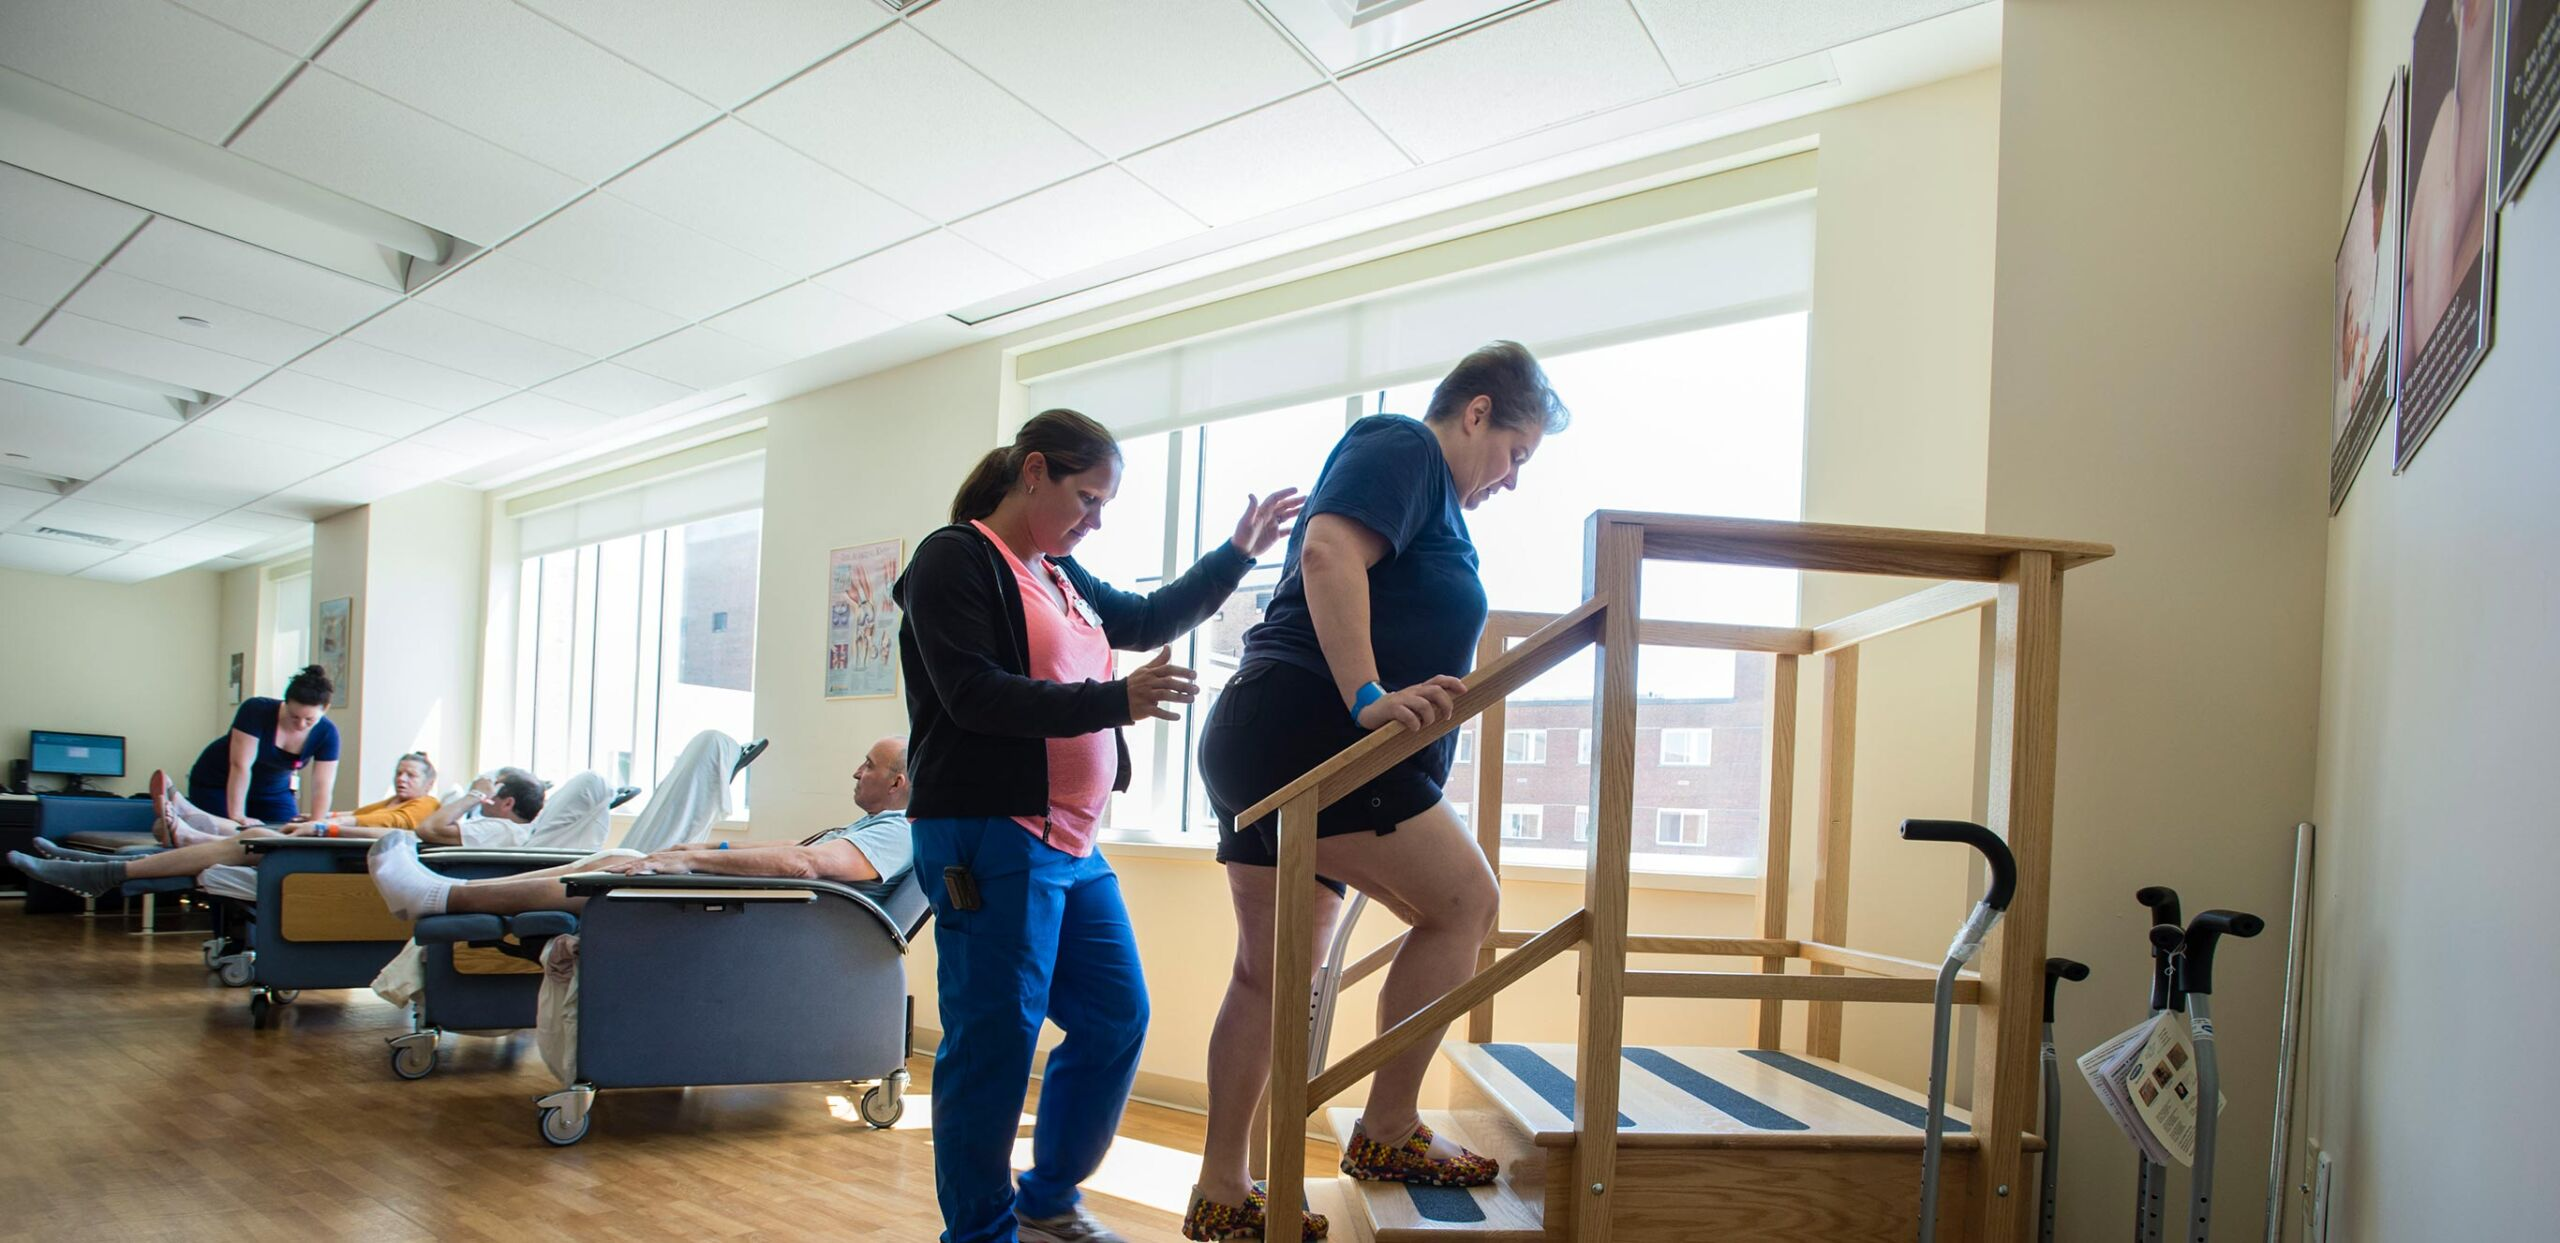 Physical therapist assists a patient as she practices climbing stairs after knee replacement at Cooley Dickinson Medical Group Orthopedics & Sports Medicine, West Hatfield, MA 01088.